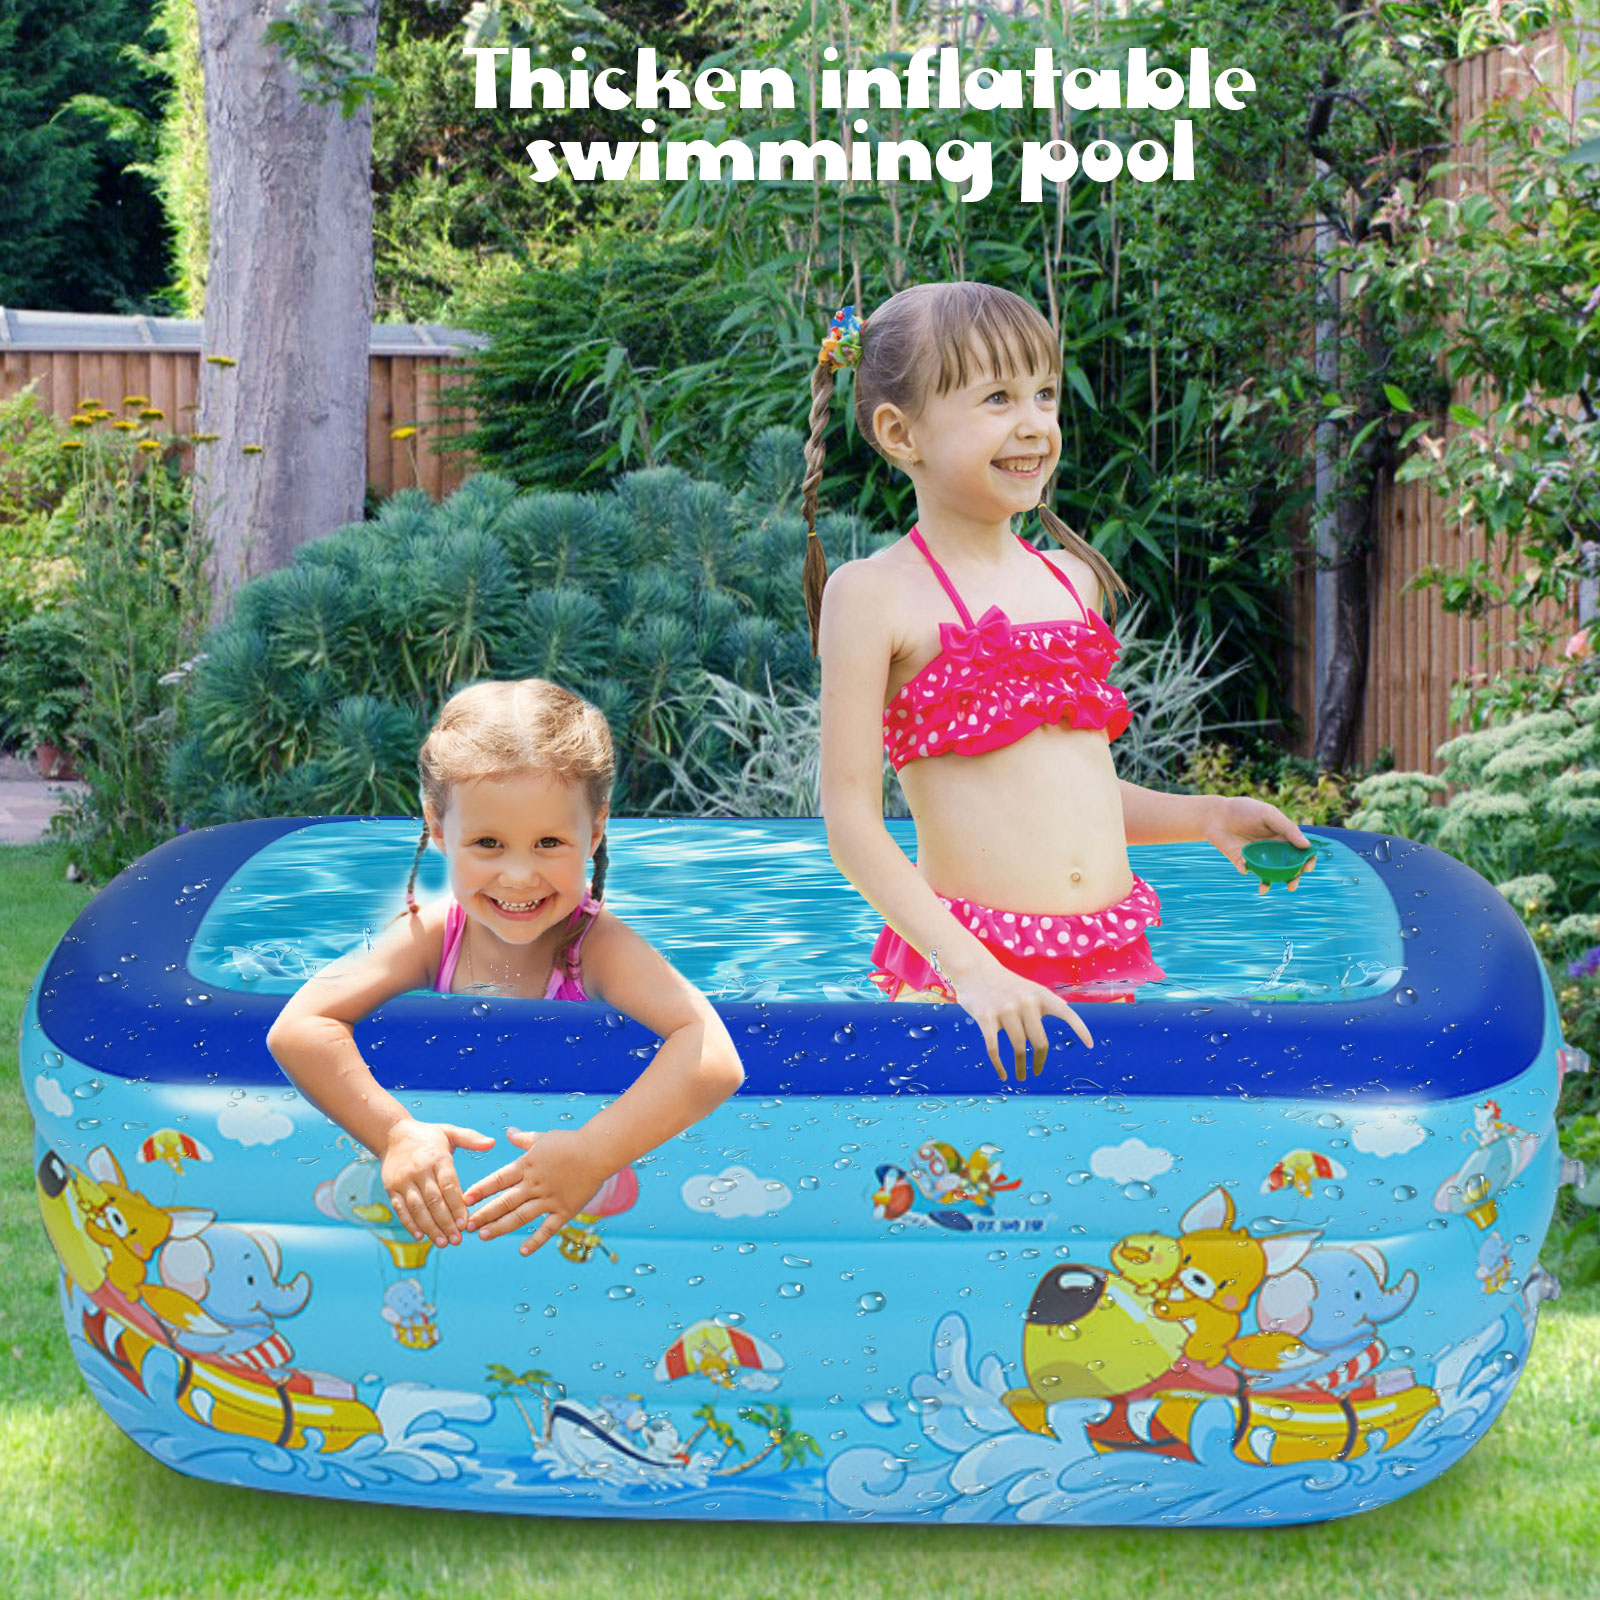 Thickening Inflatable Swimming Pool Family Summer Outdoor Backyard Water Play Pool Bathtub for 1-3 Kids Children 51x35x22inch